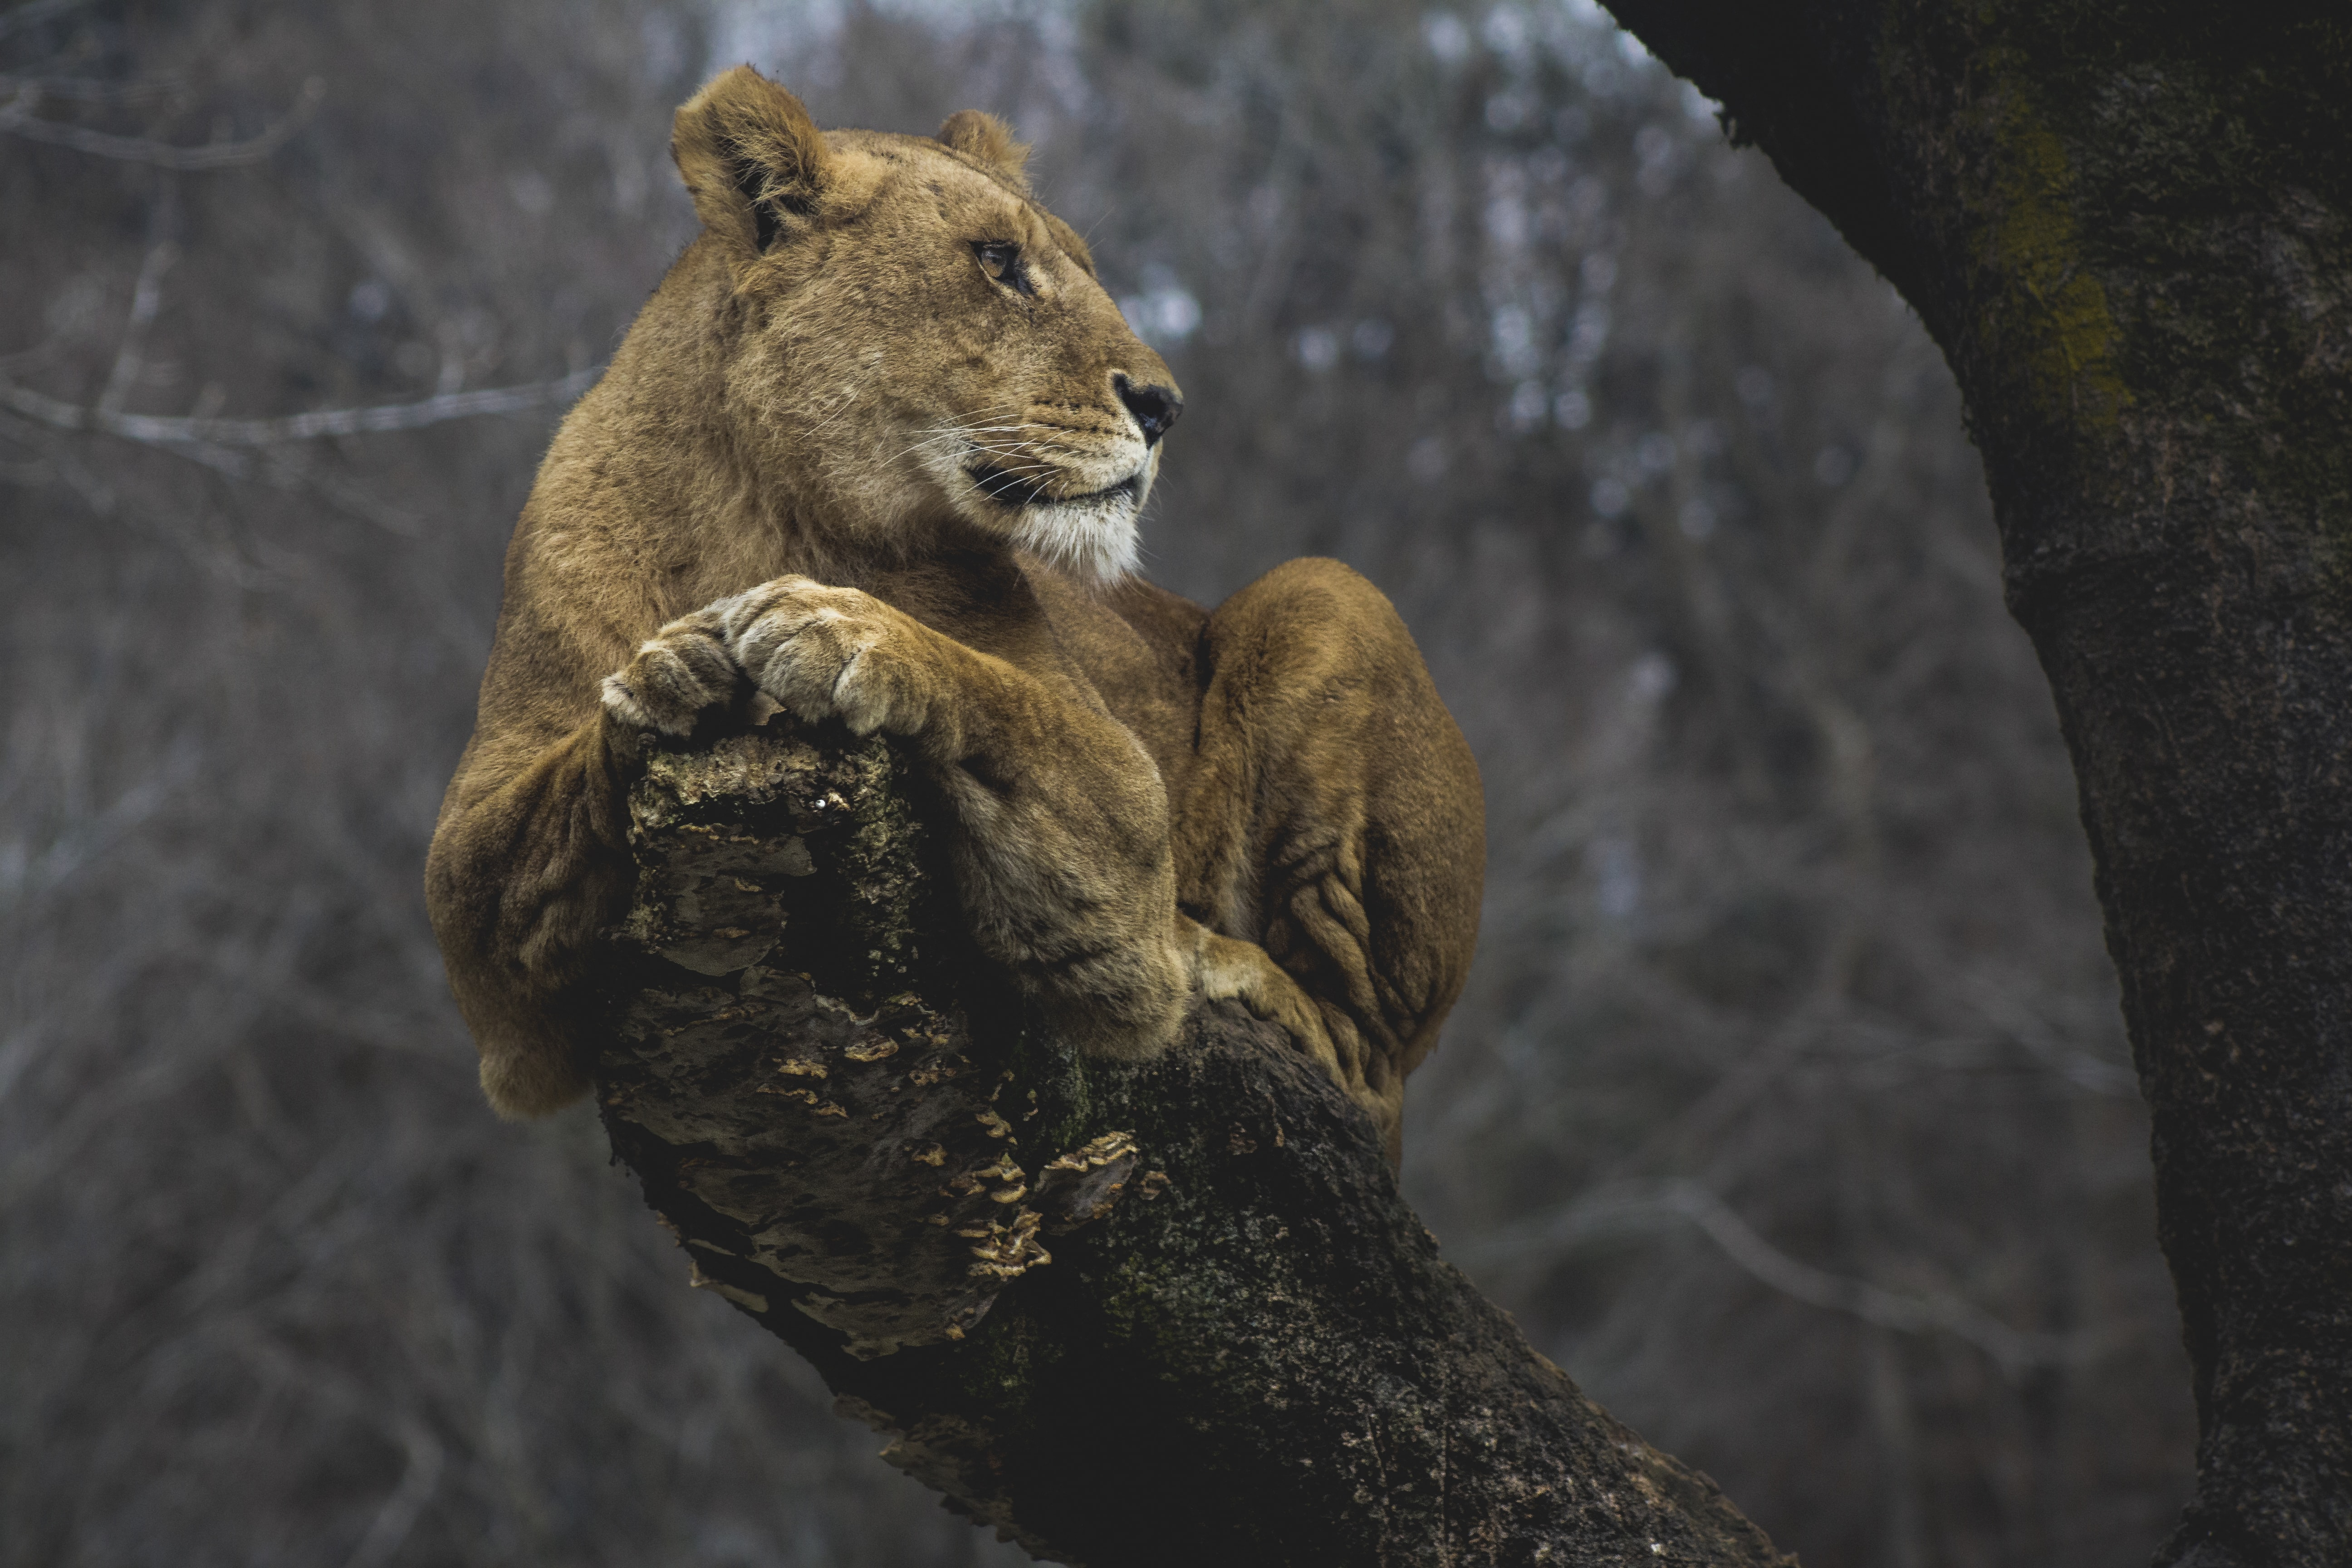 Lioness on tree branch at daytime